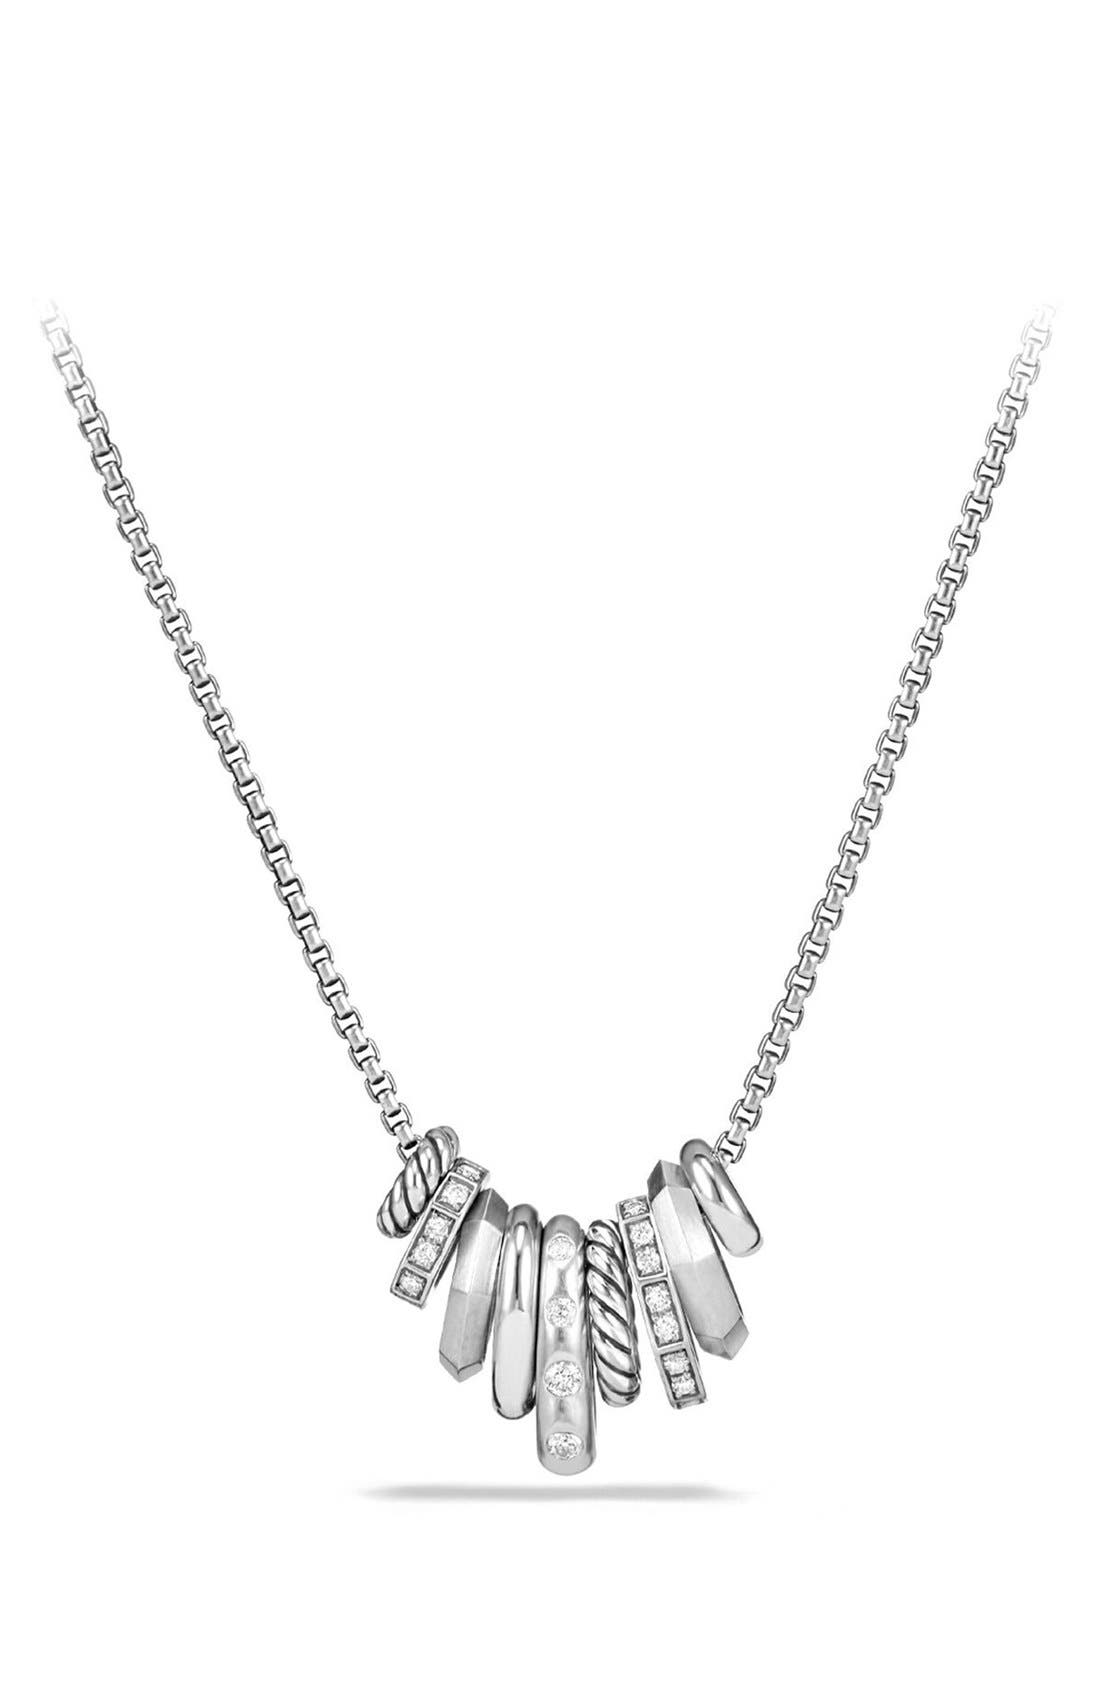 David Yurman 'Stax' Small Pendant Necklace with Diamonds